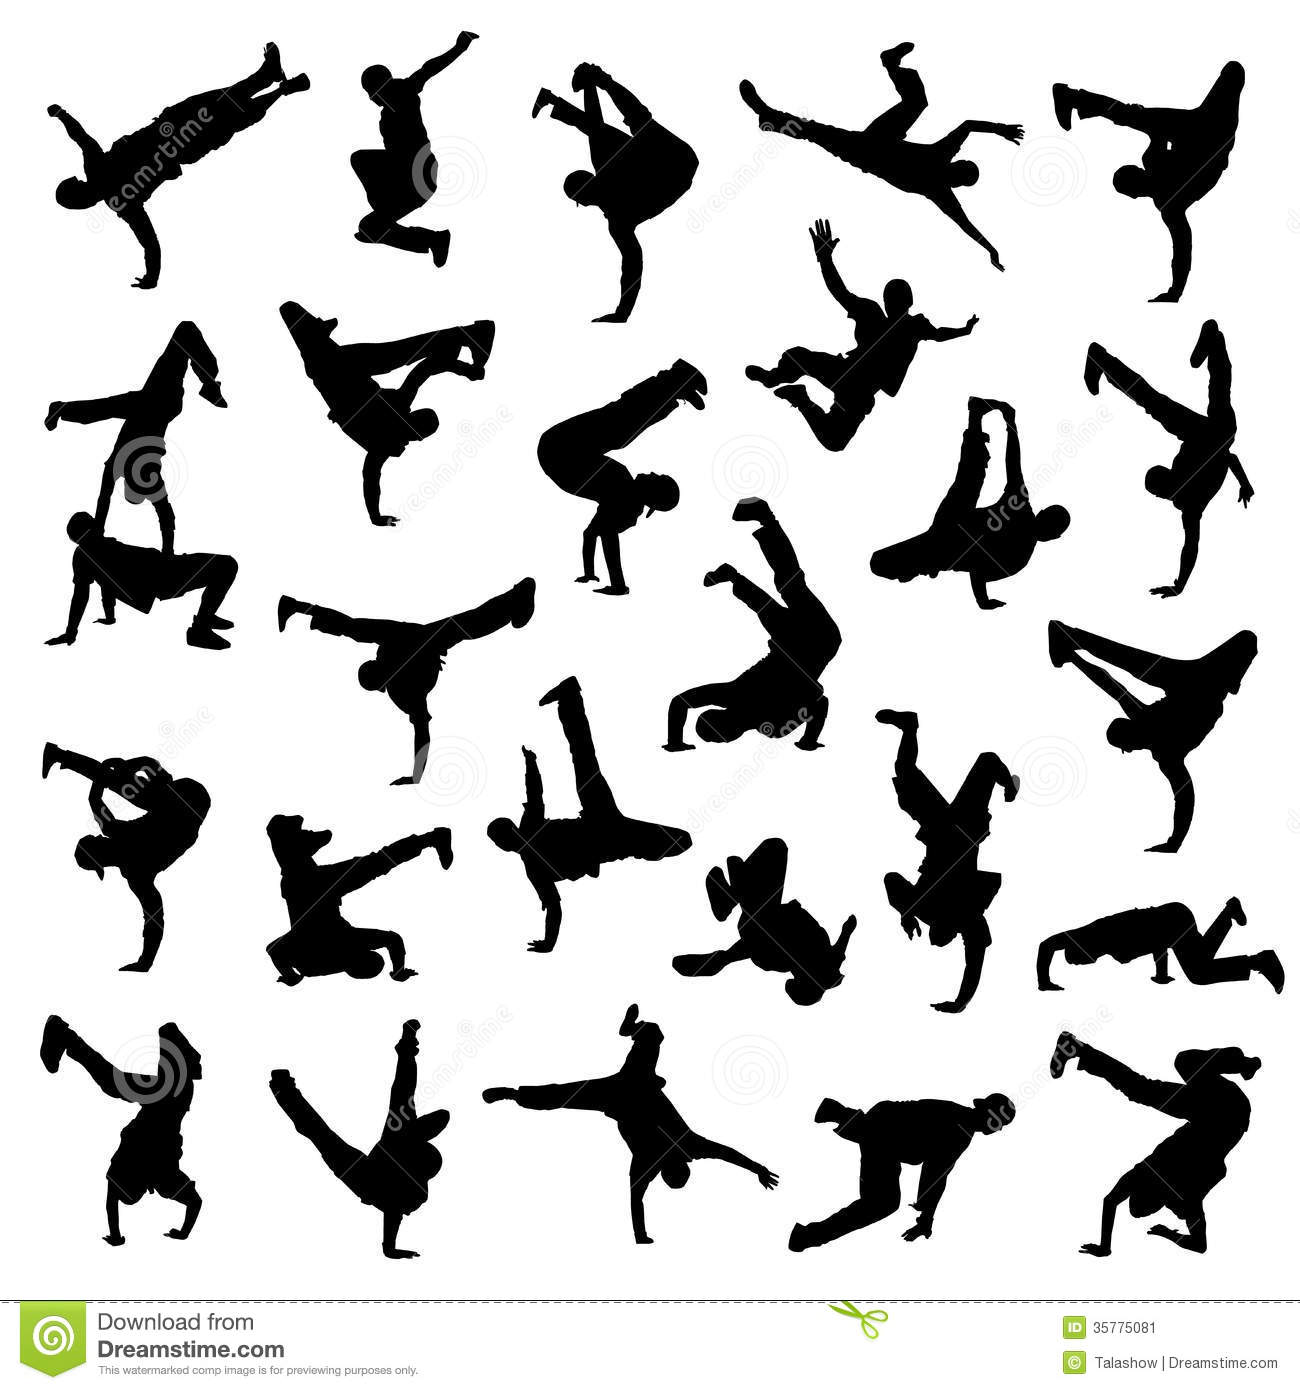 Break Dance Silhouettes Stock Image   Image  35775081